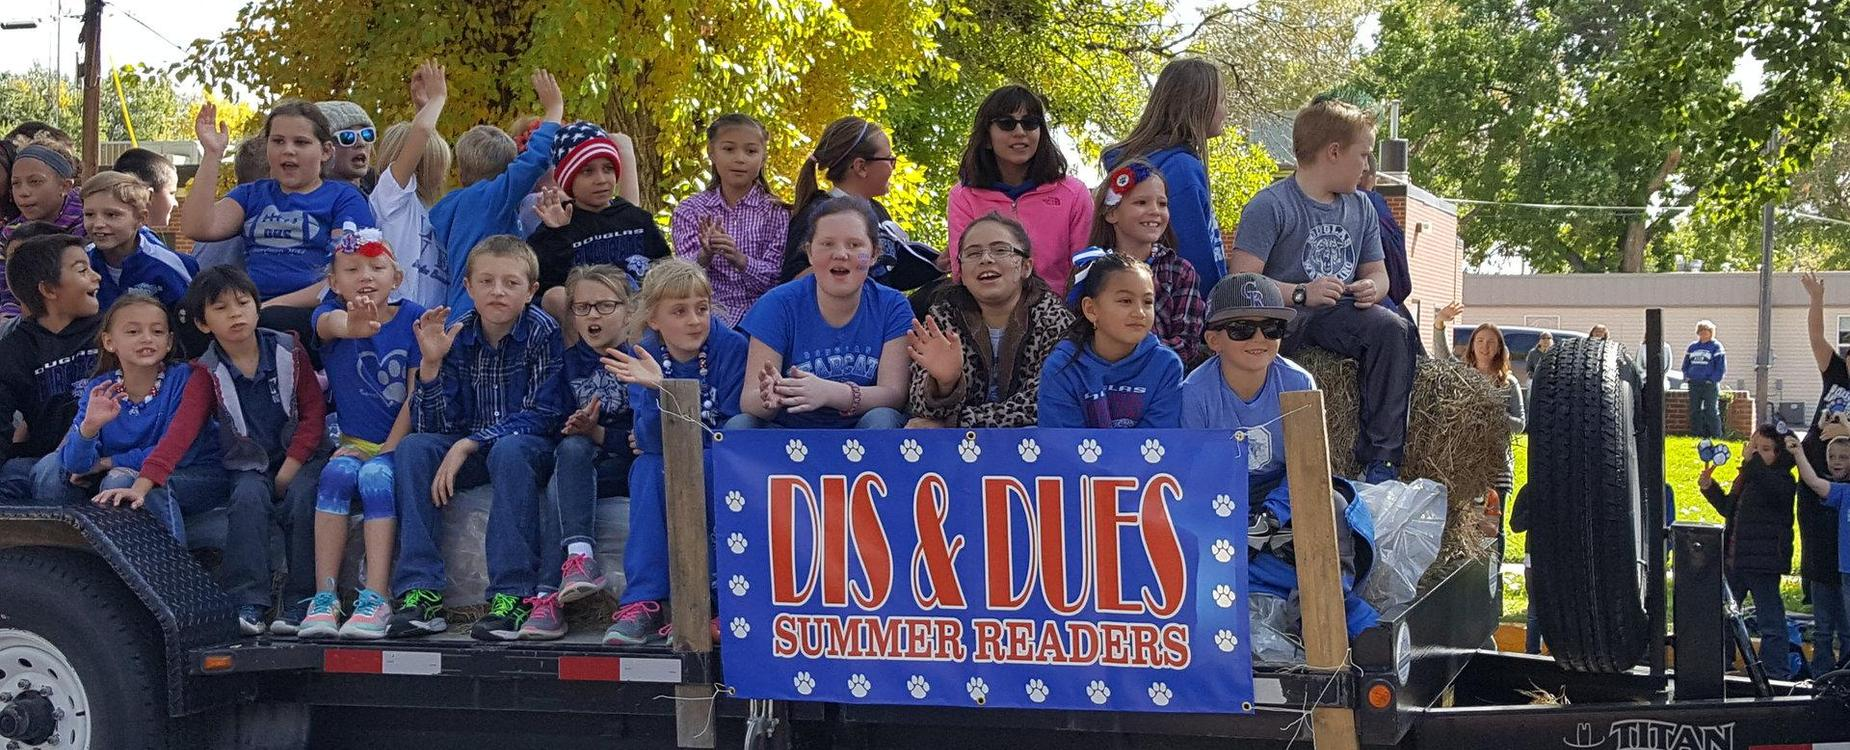 Summer Readers on Homecoming float in parade